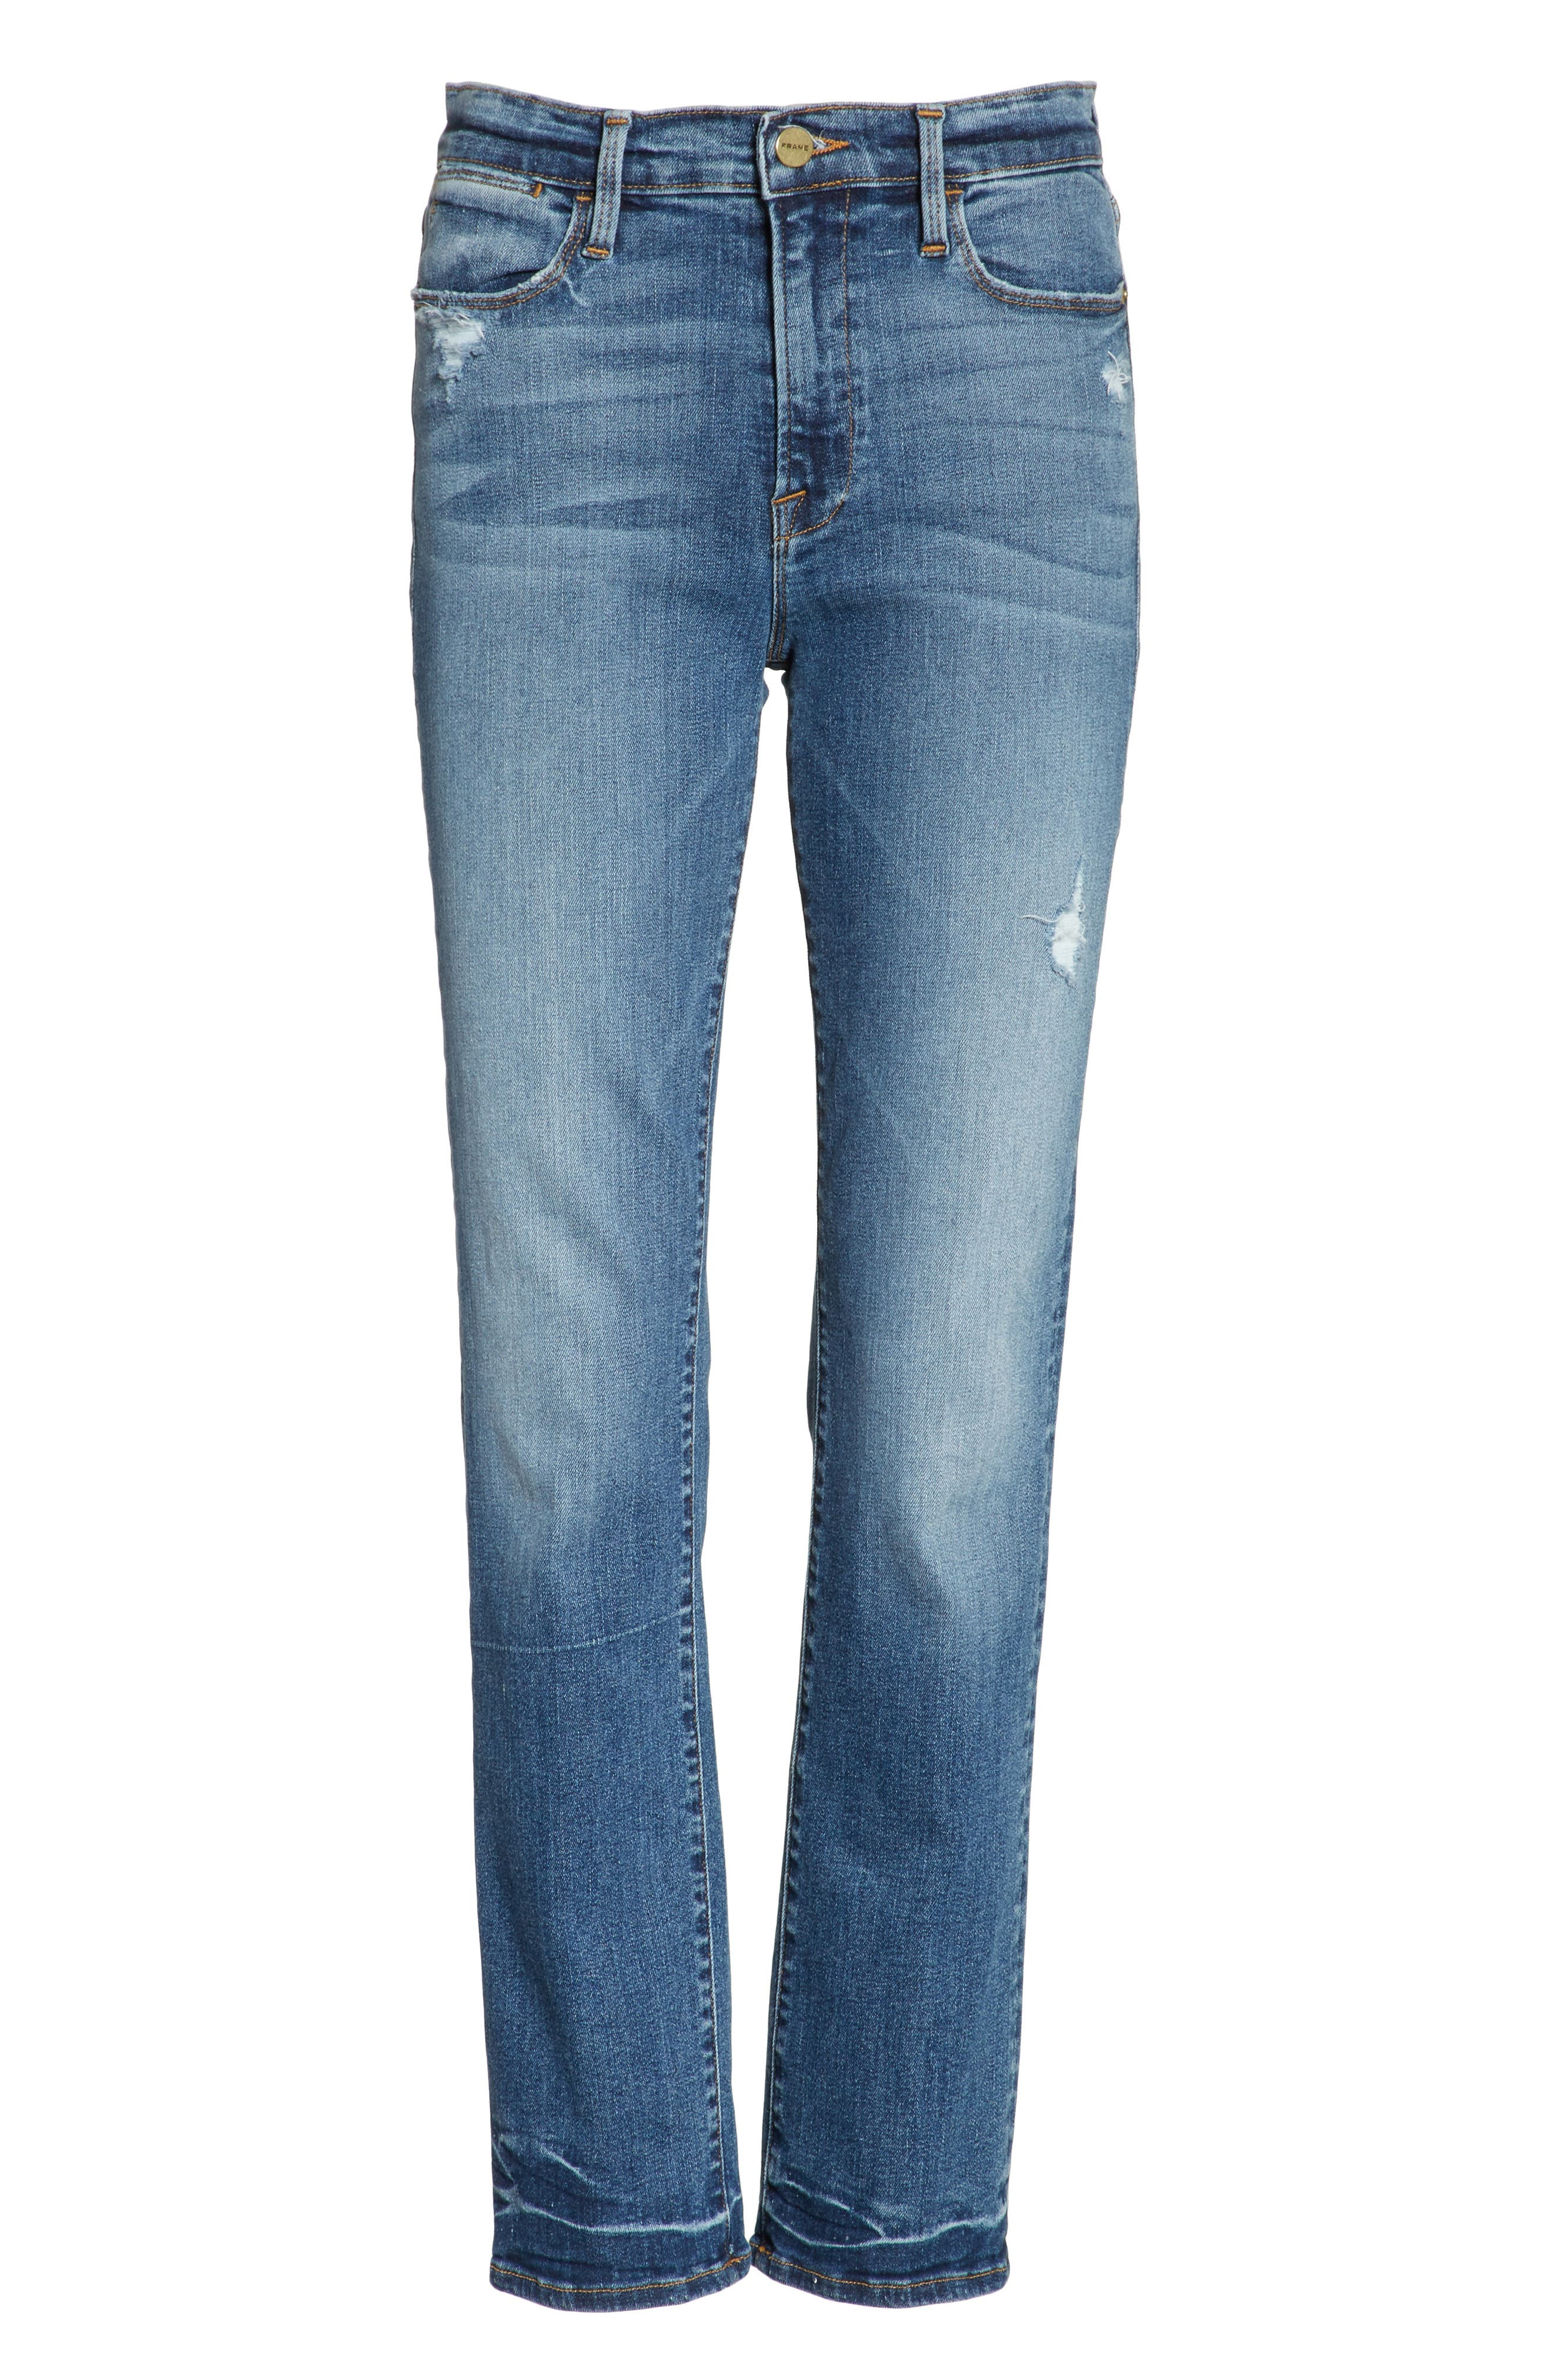 Le High Straight High Waist Crop Jeans,                             Alternate thumbnail 7, color,                             Whitwell